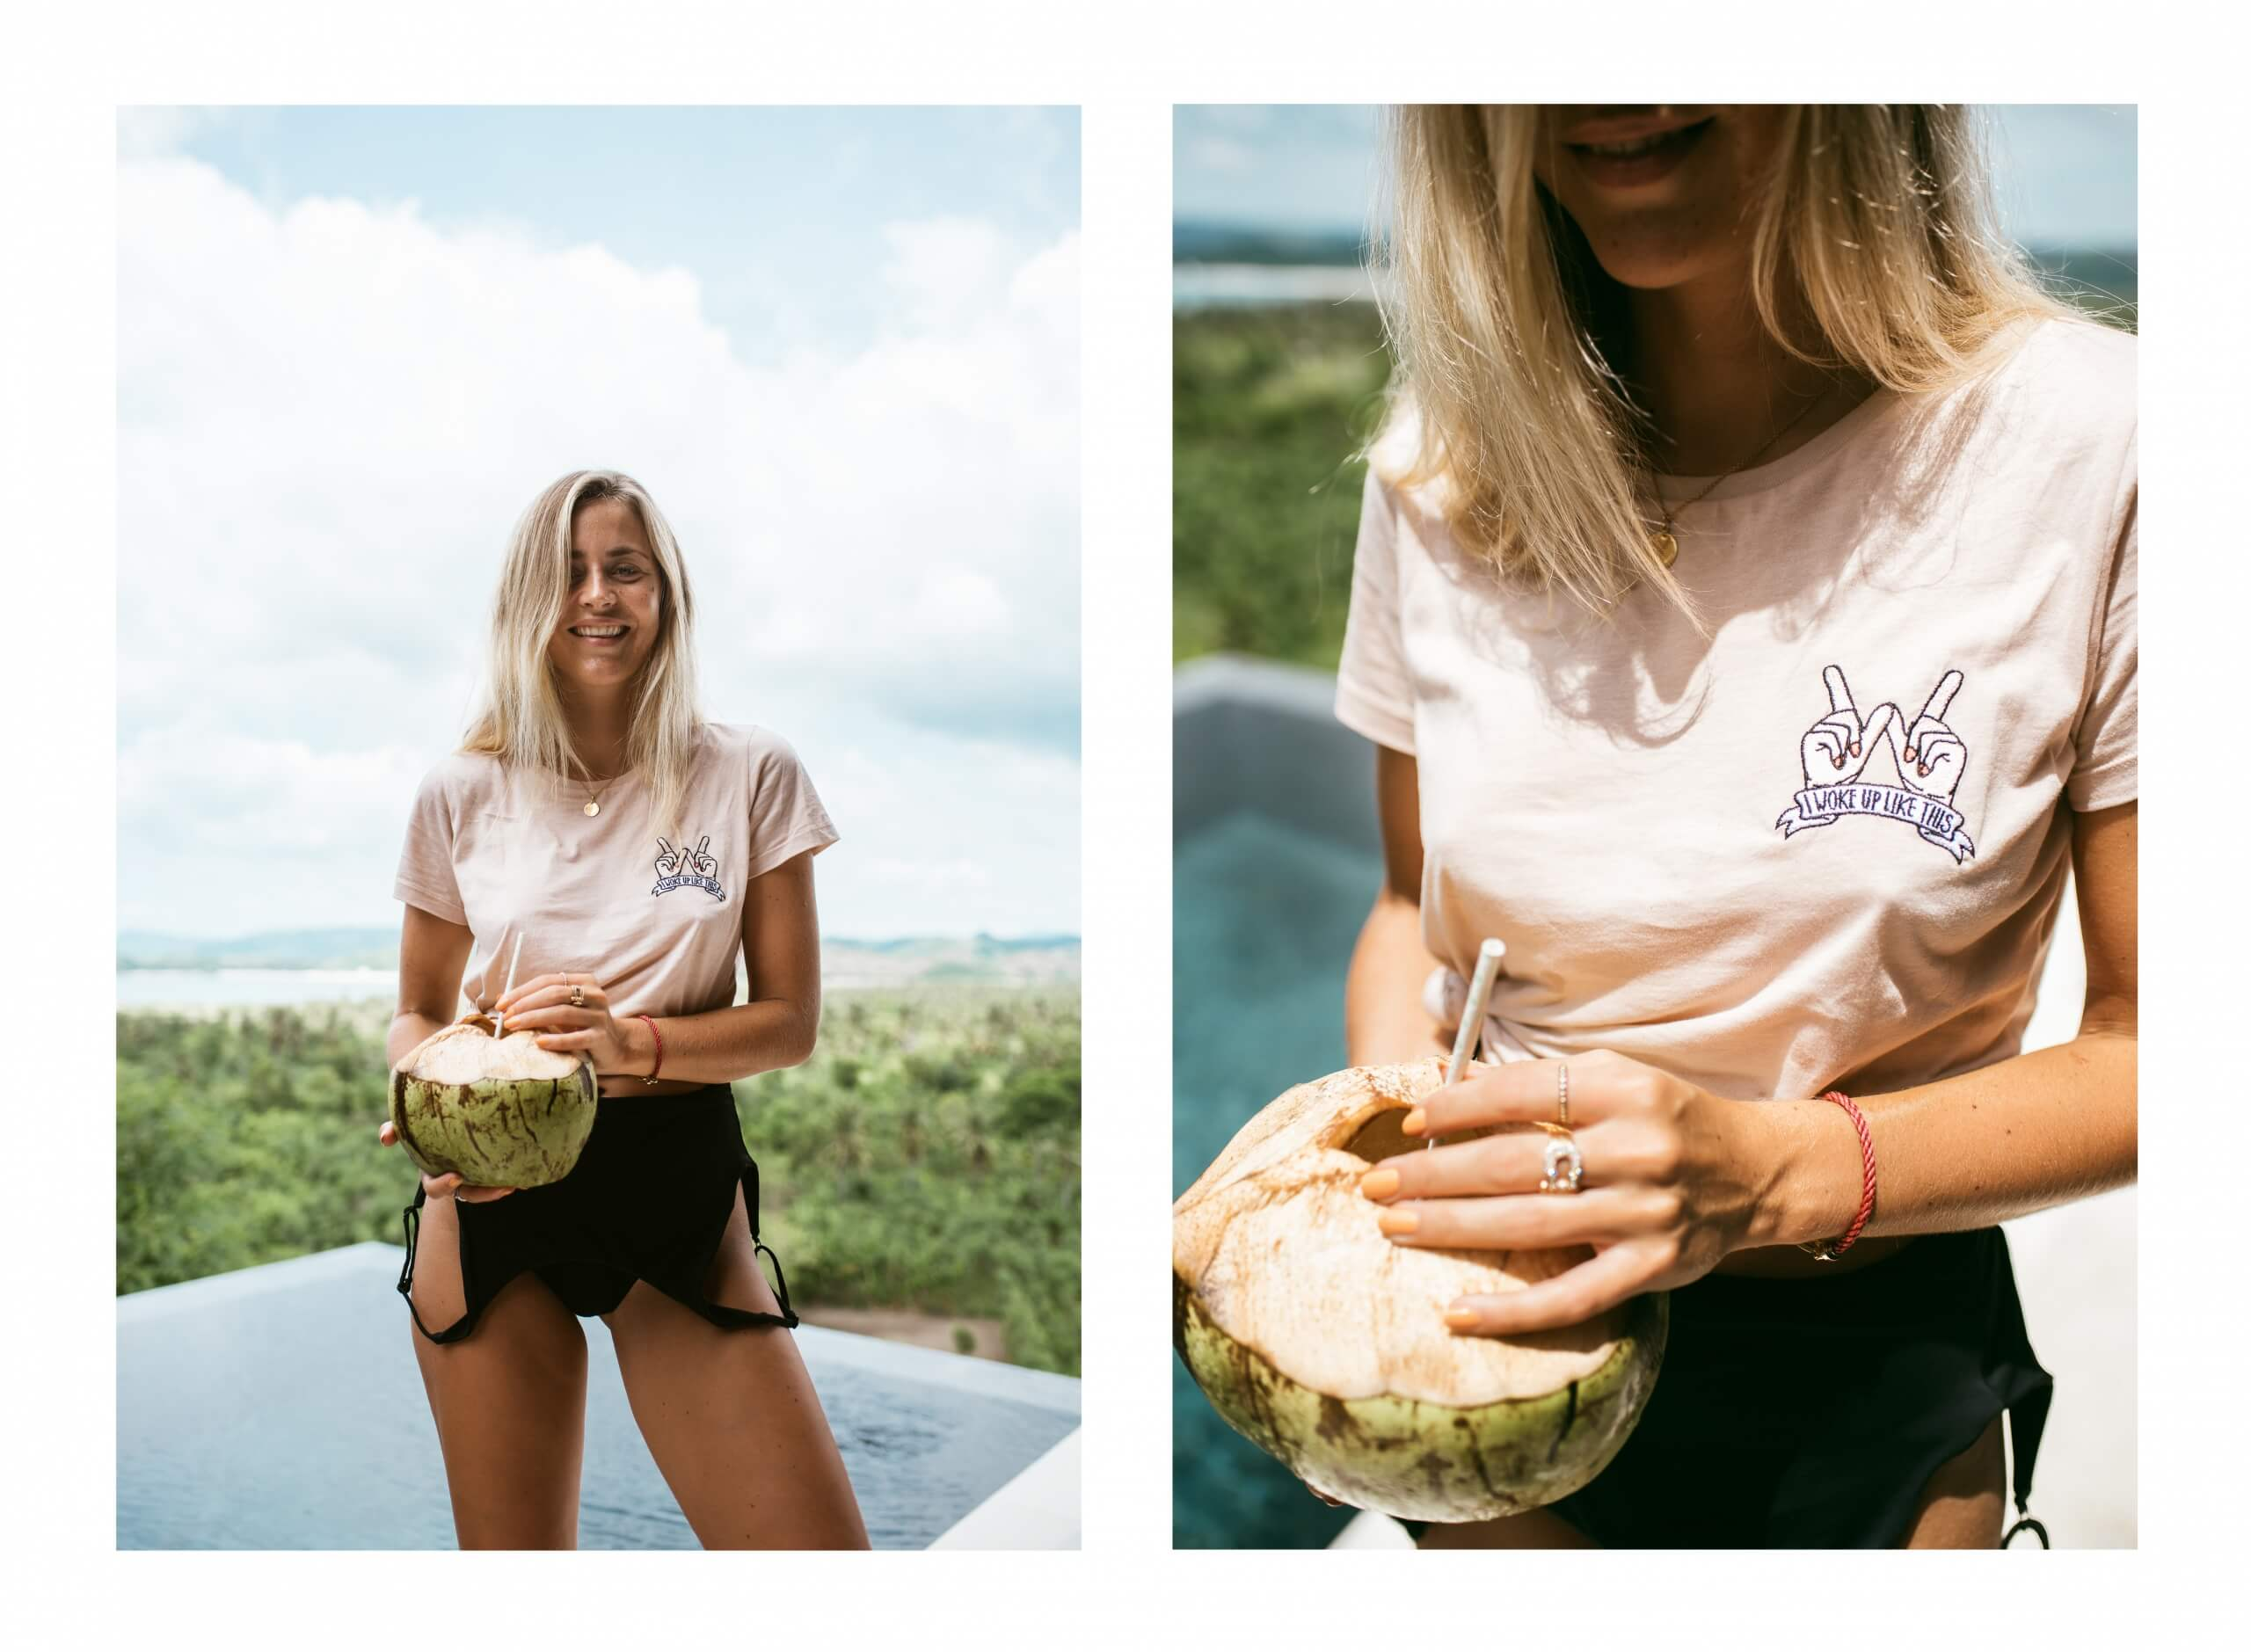 janni-deler-coconut-lombok-1-of-4-copy